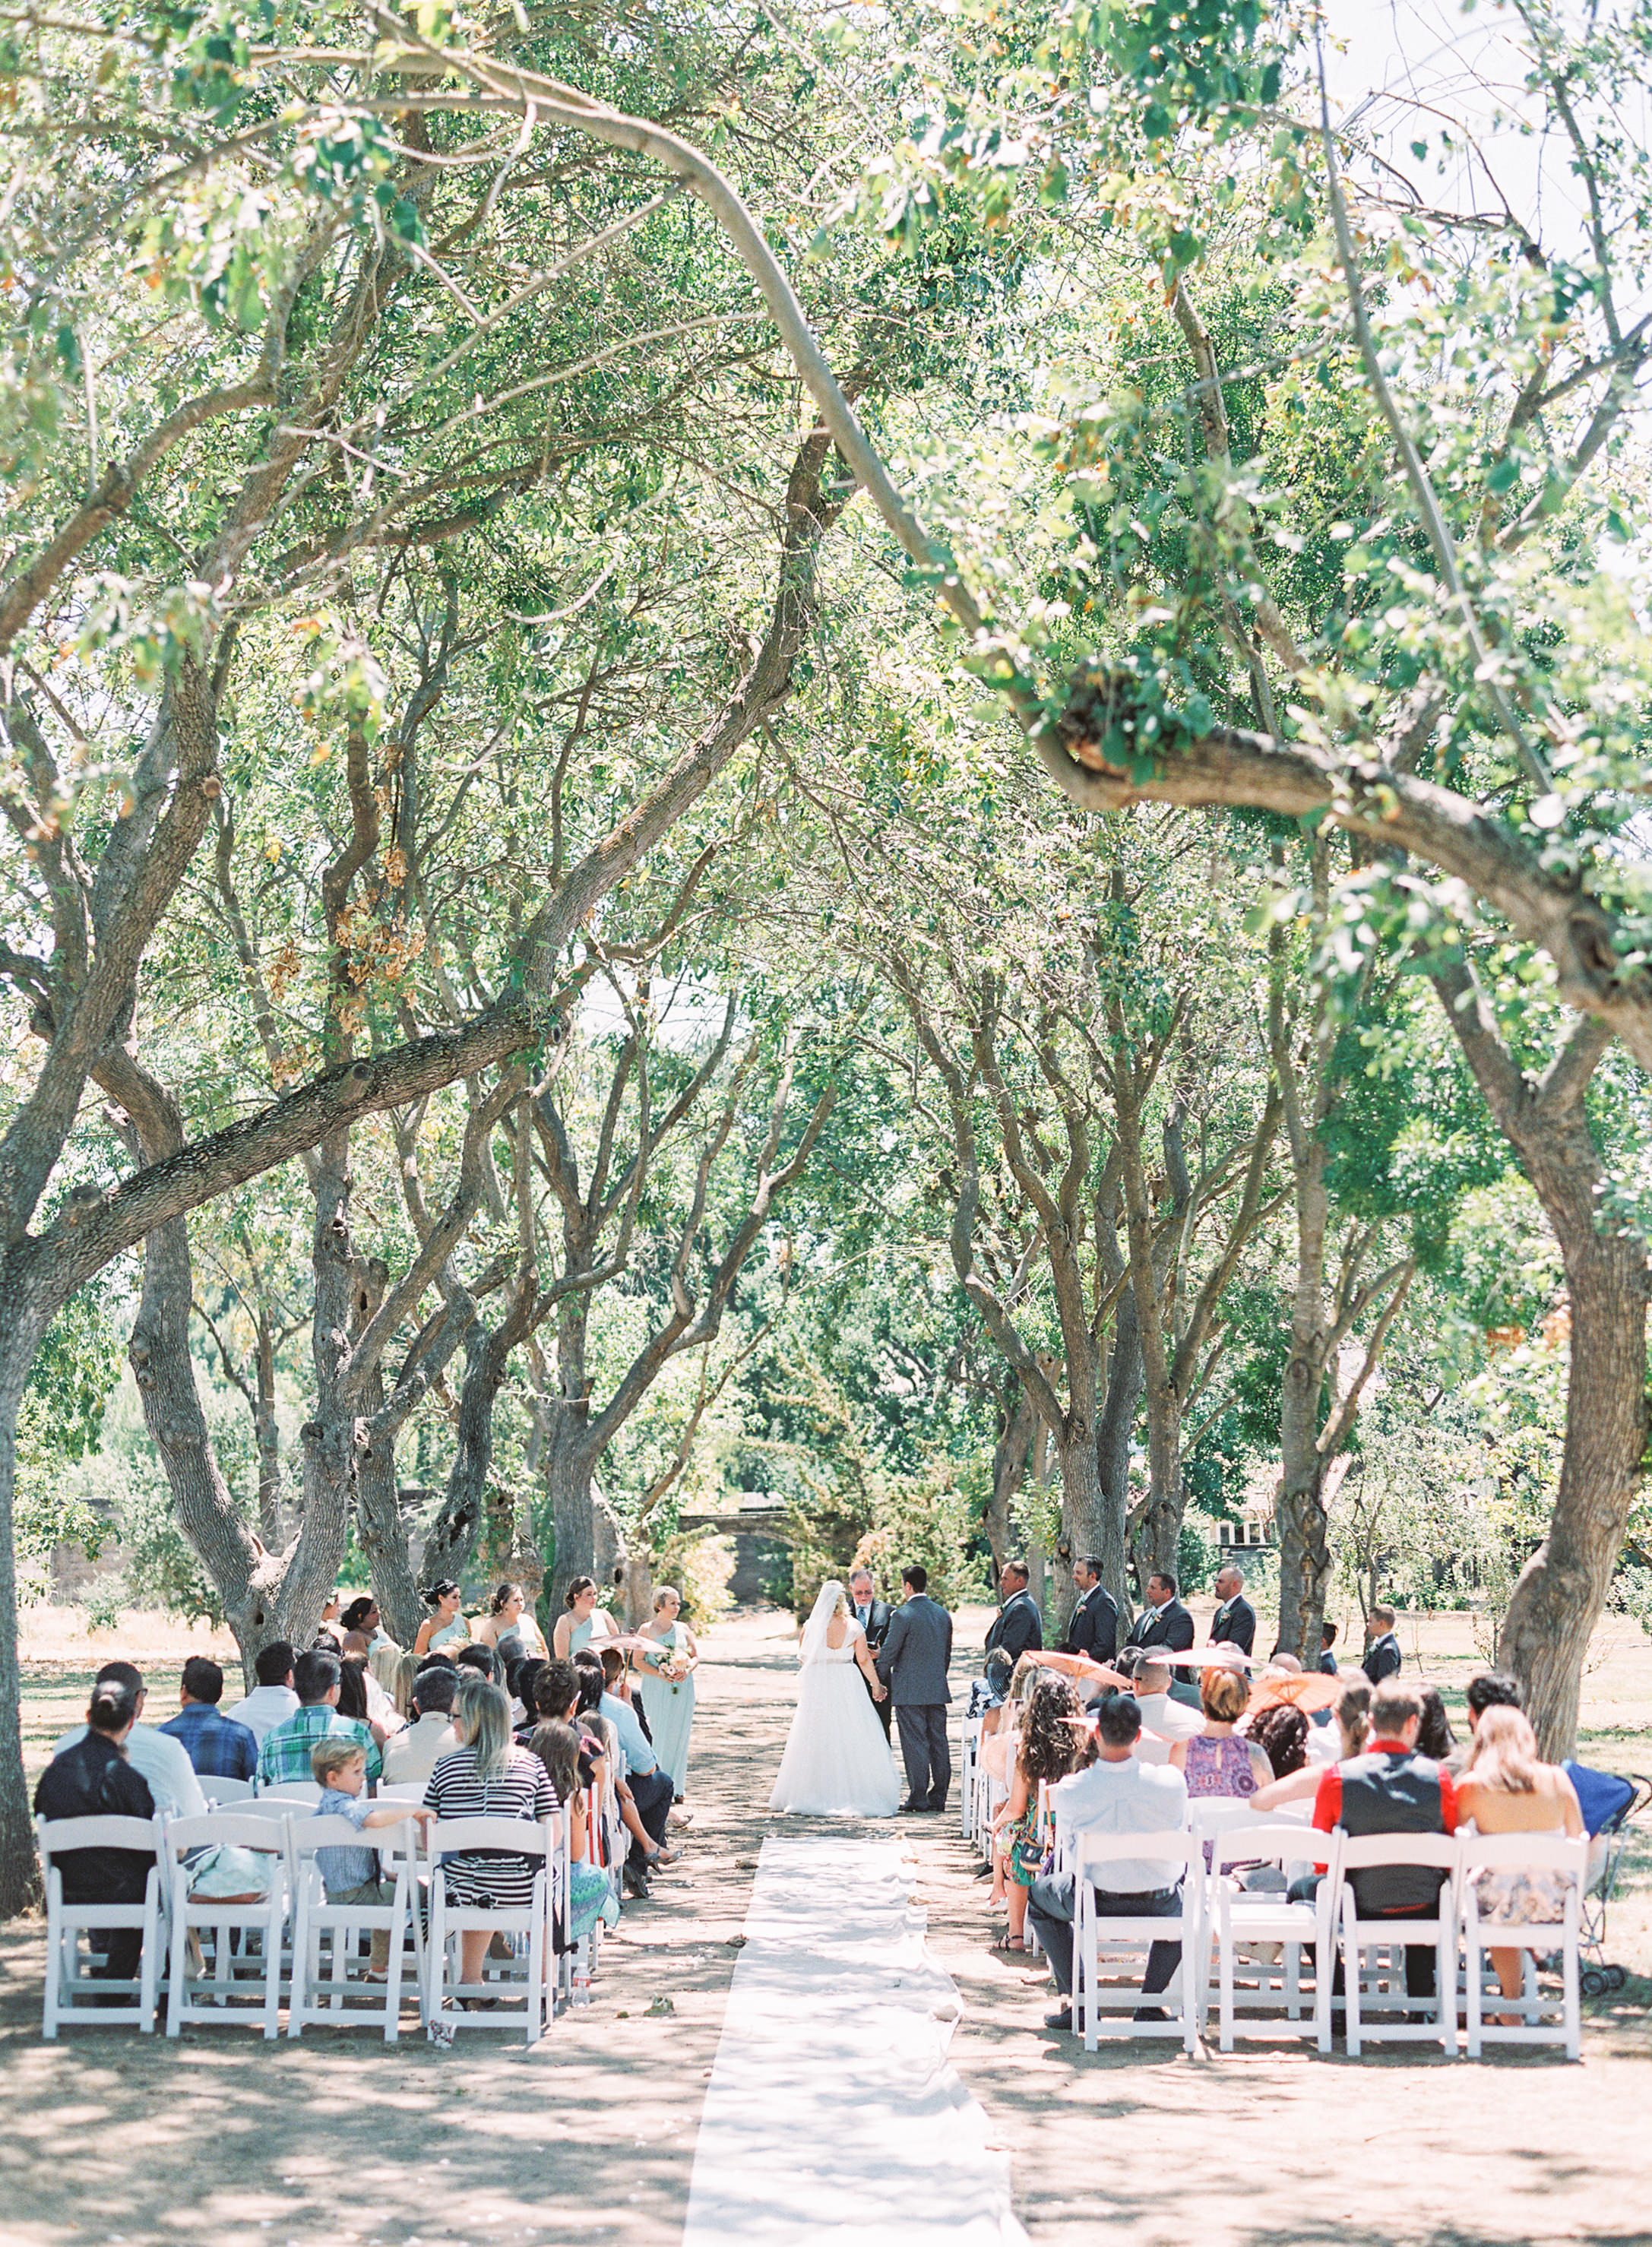 southern-inspired-wedding-at-ravenswood-historic-site-006-6.jpg